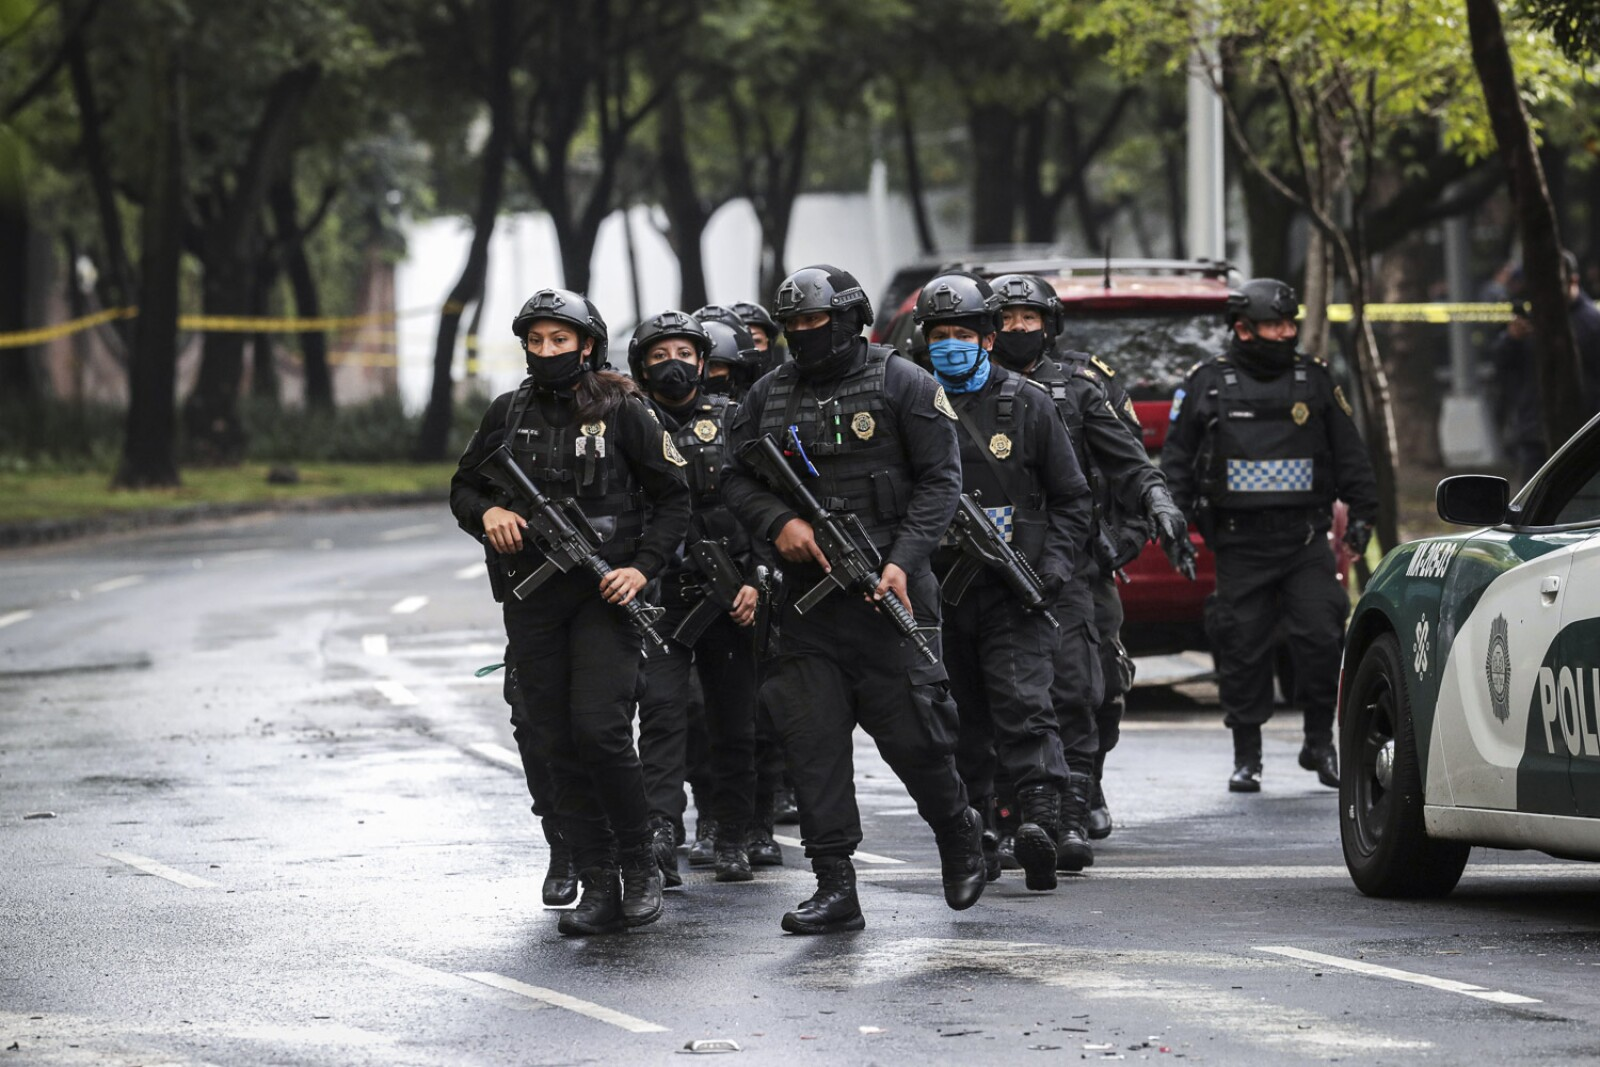 Police officers arrive at the area where a shooting took place in Mexico City